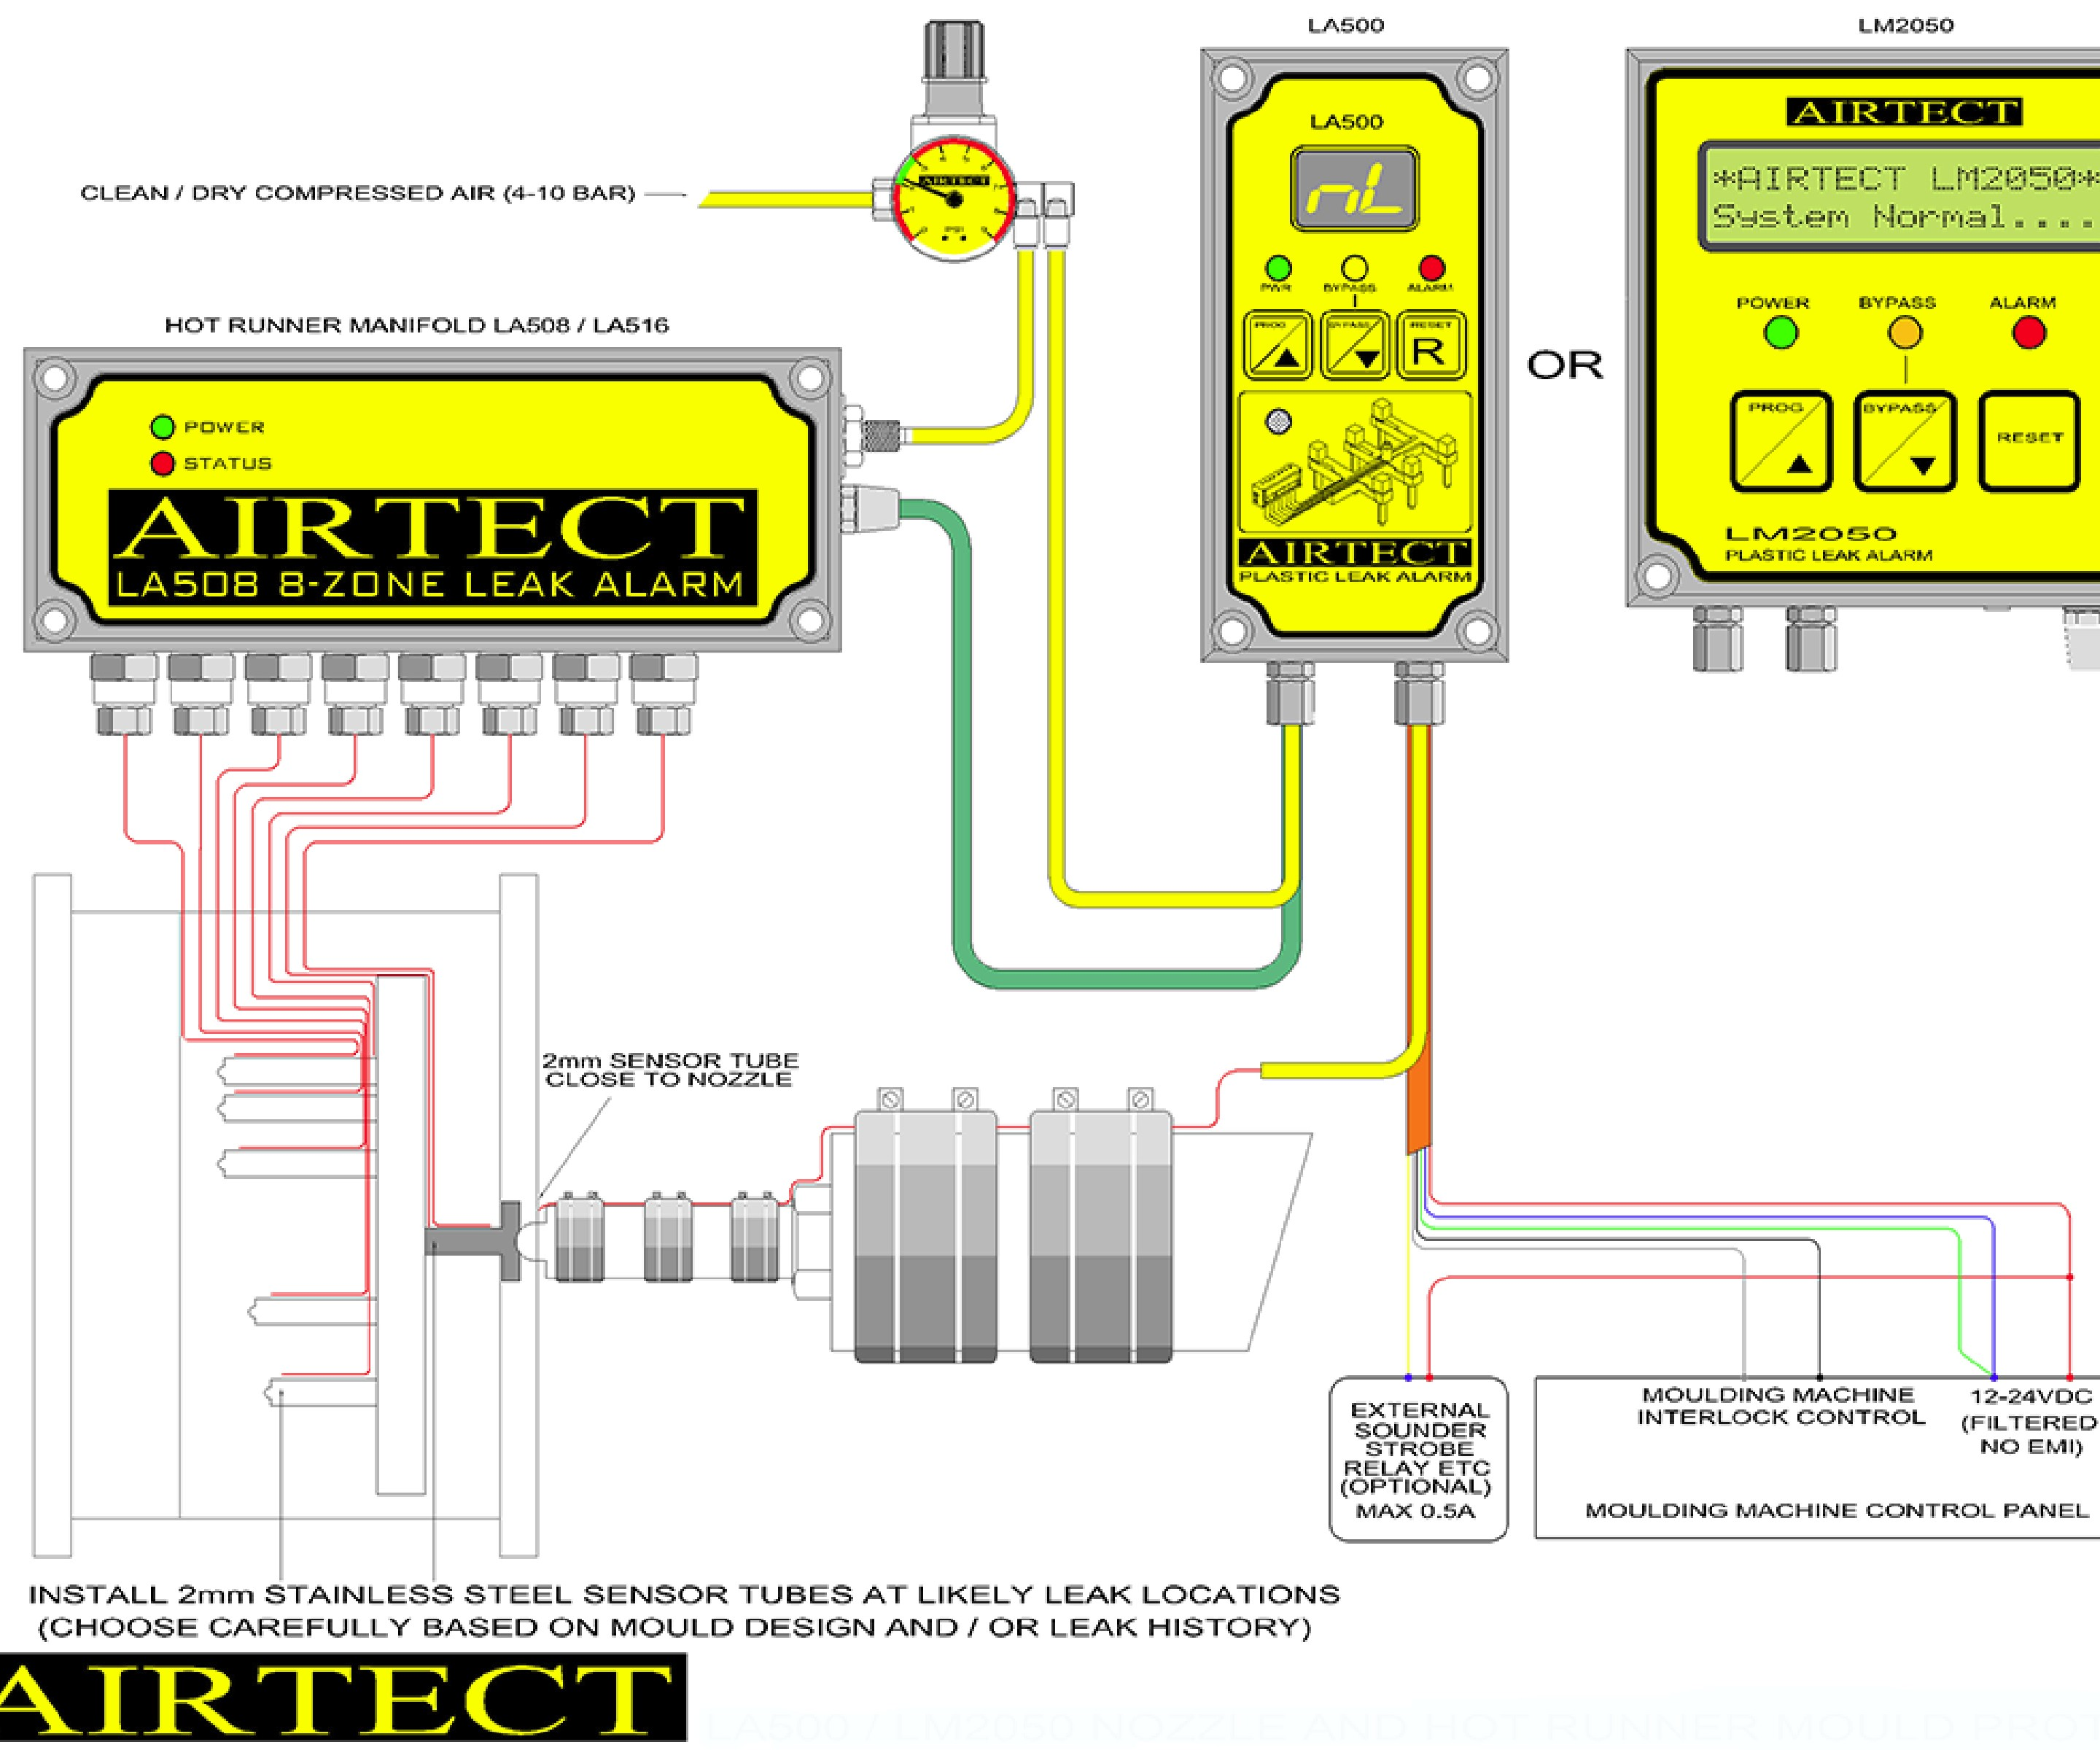 Leak Alarm Panel Wiring Diagram Diagrams Car System Detects Nozzle And Hot Runner Leaks Early Moldmaking Rh Moldmakingtechnology Com Viper Fire